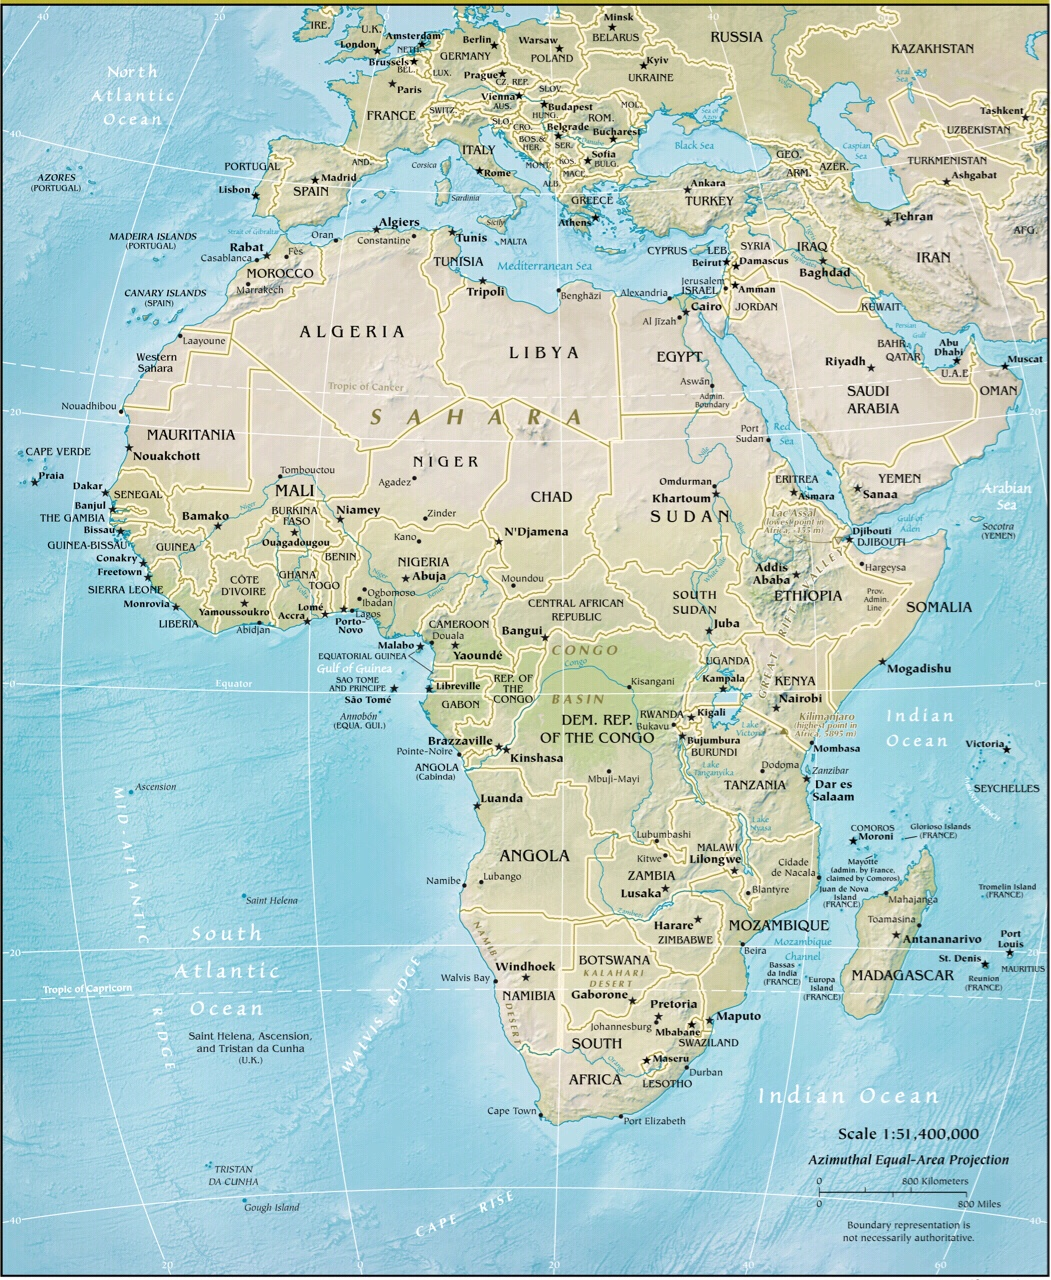 Map Of Africa Physical Geography.Africa Physical Geography